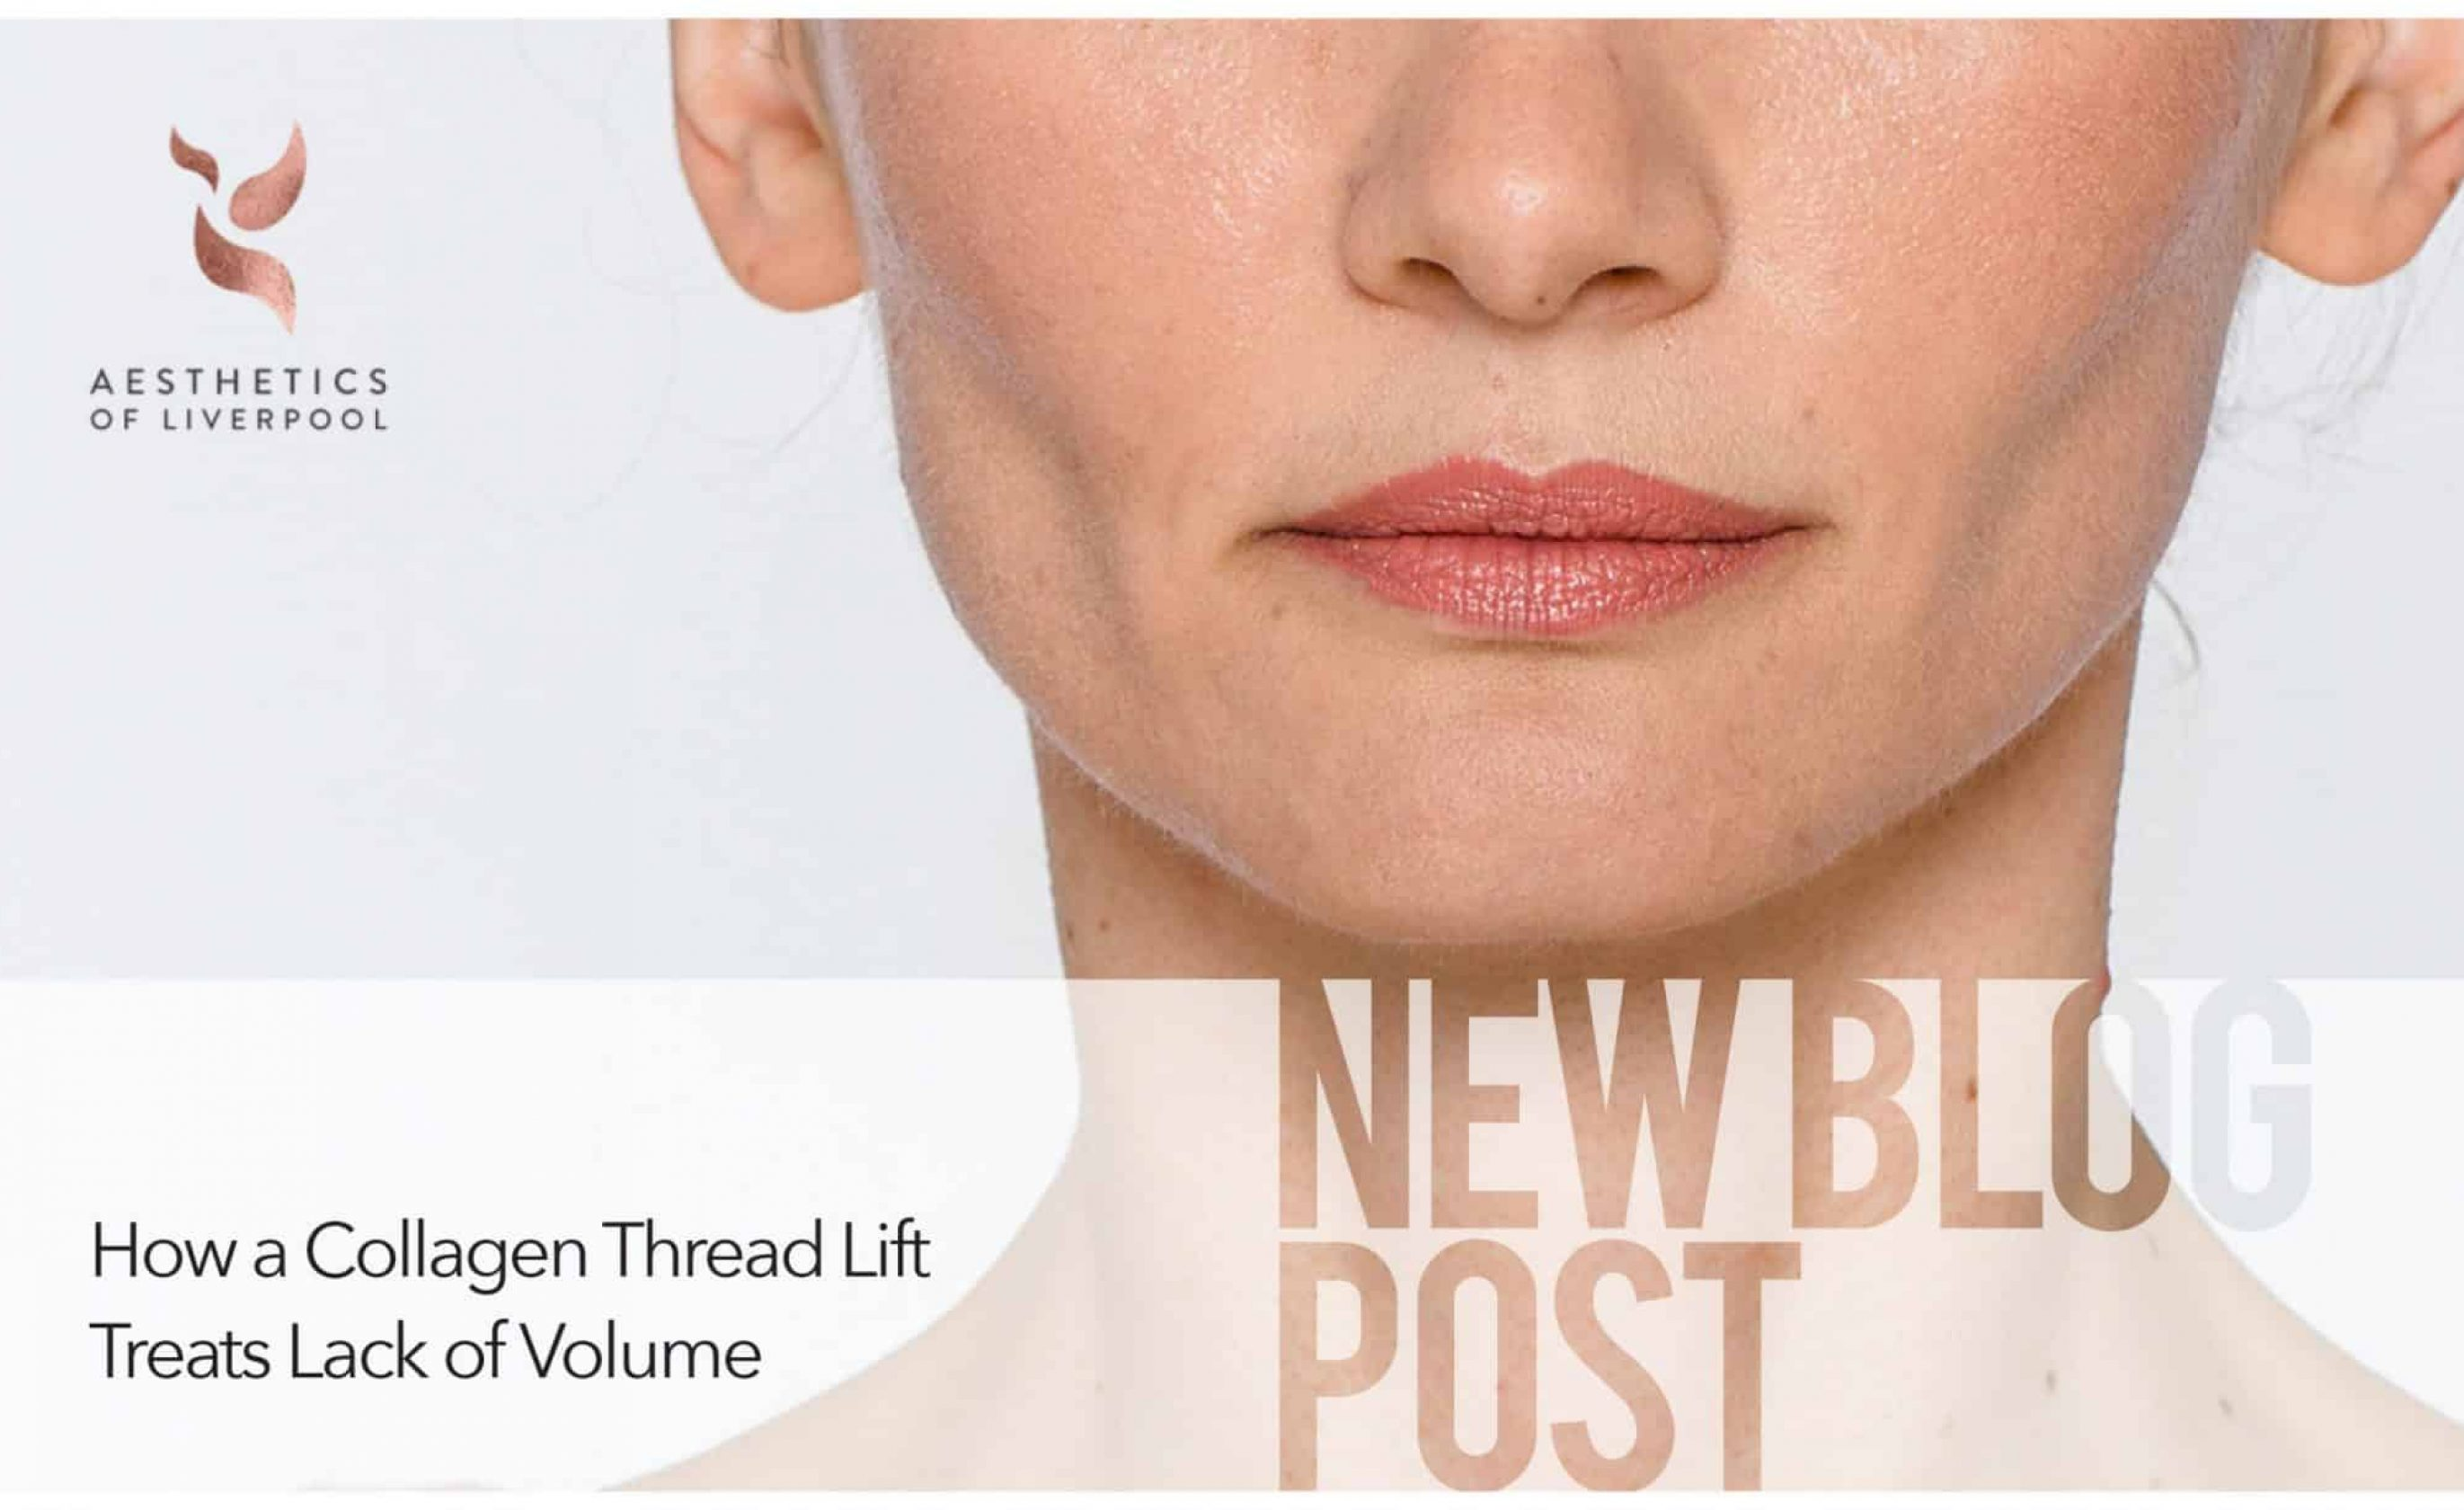 How A Collagen Thread Lift Treats Lack of Volume